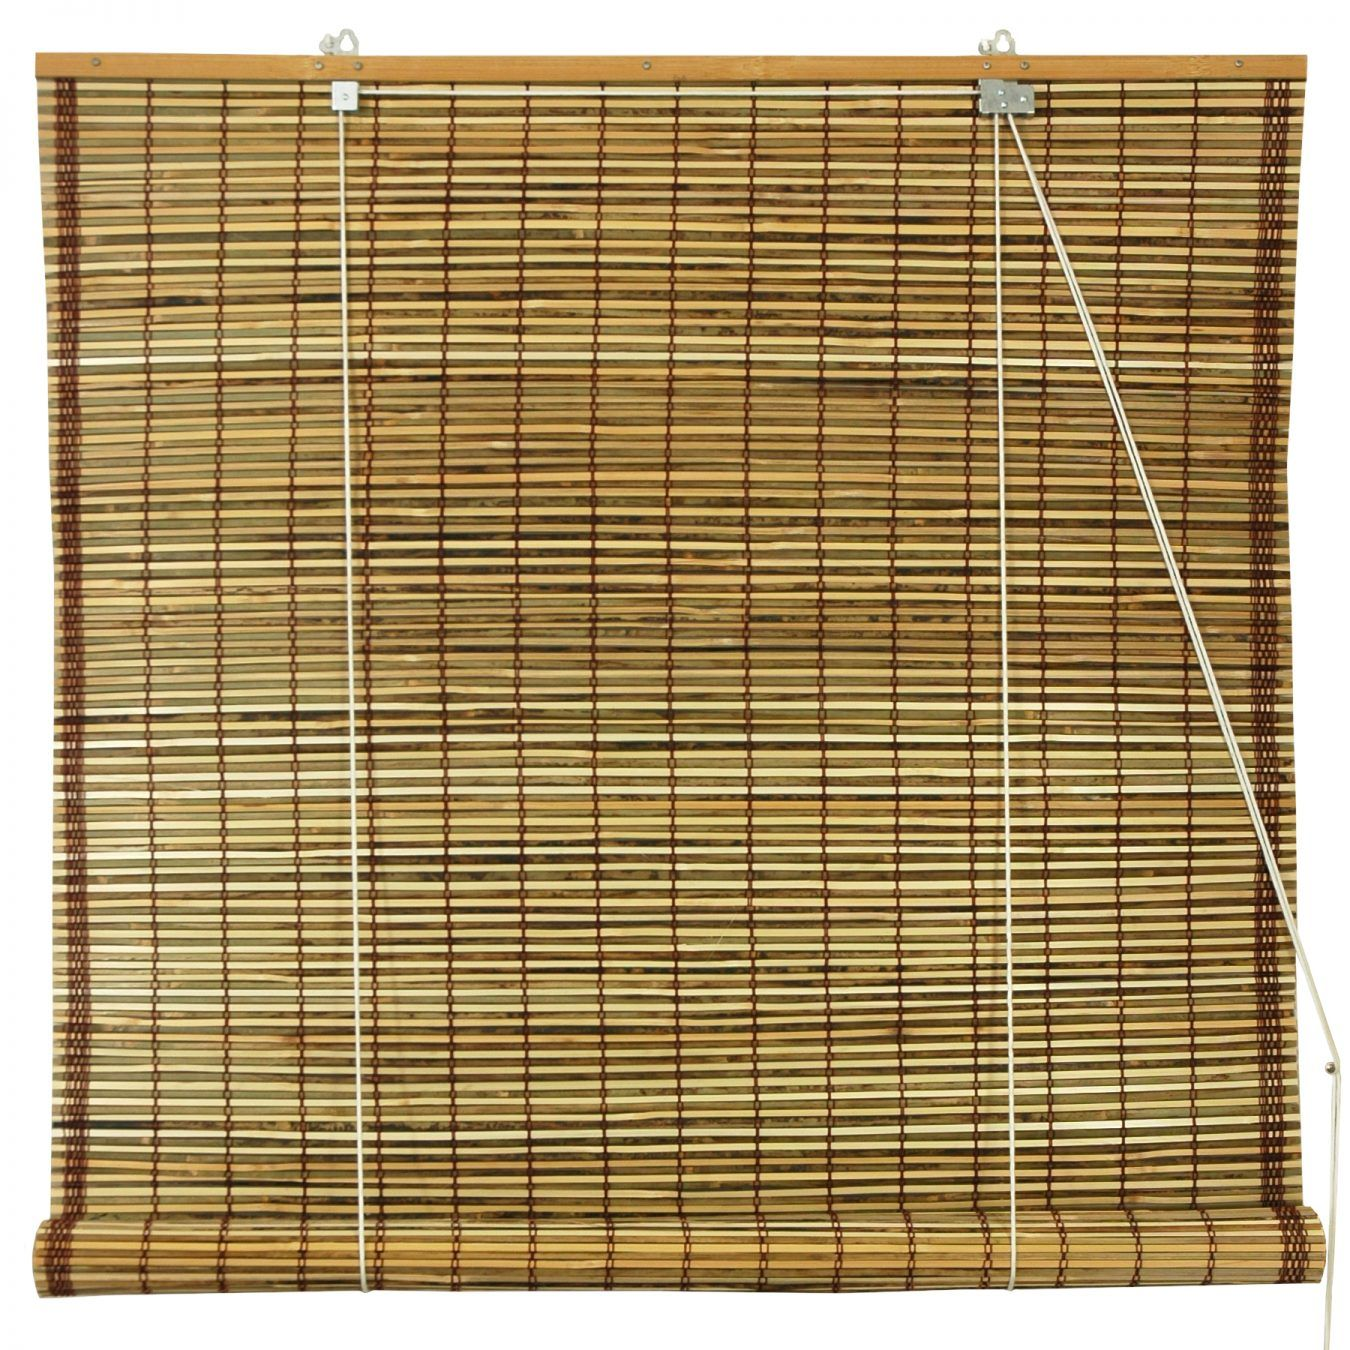 Burnt Bamboo Roll Up Blinds Tortoise Woven Wood Blind Outdoor Blinds Wood Blinds